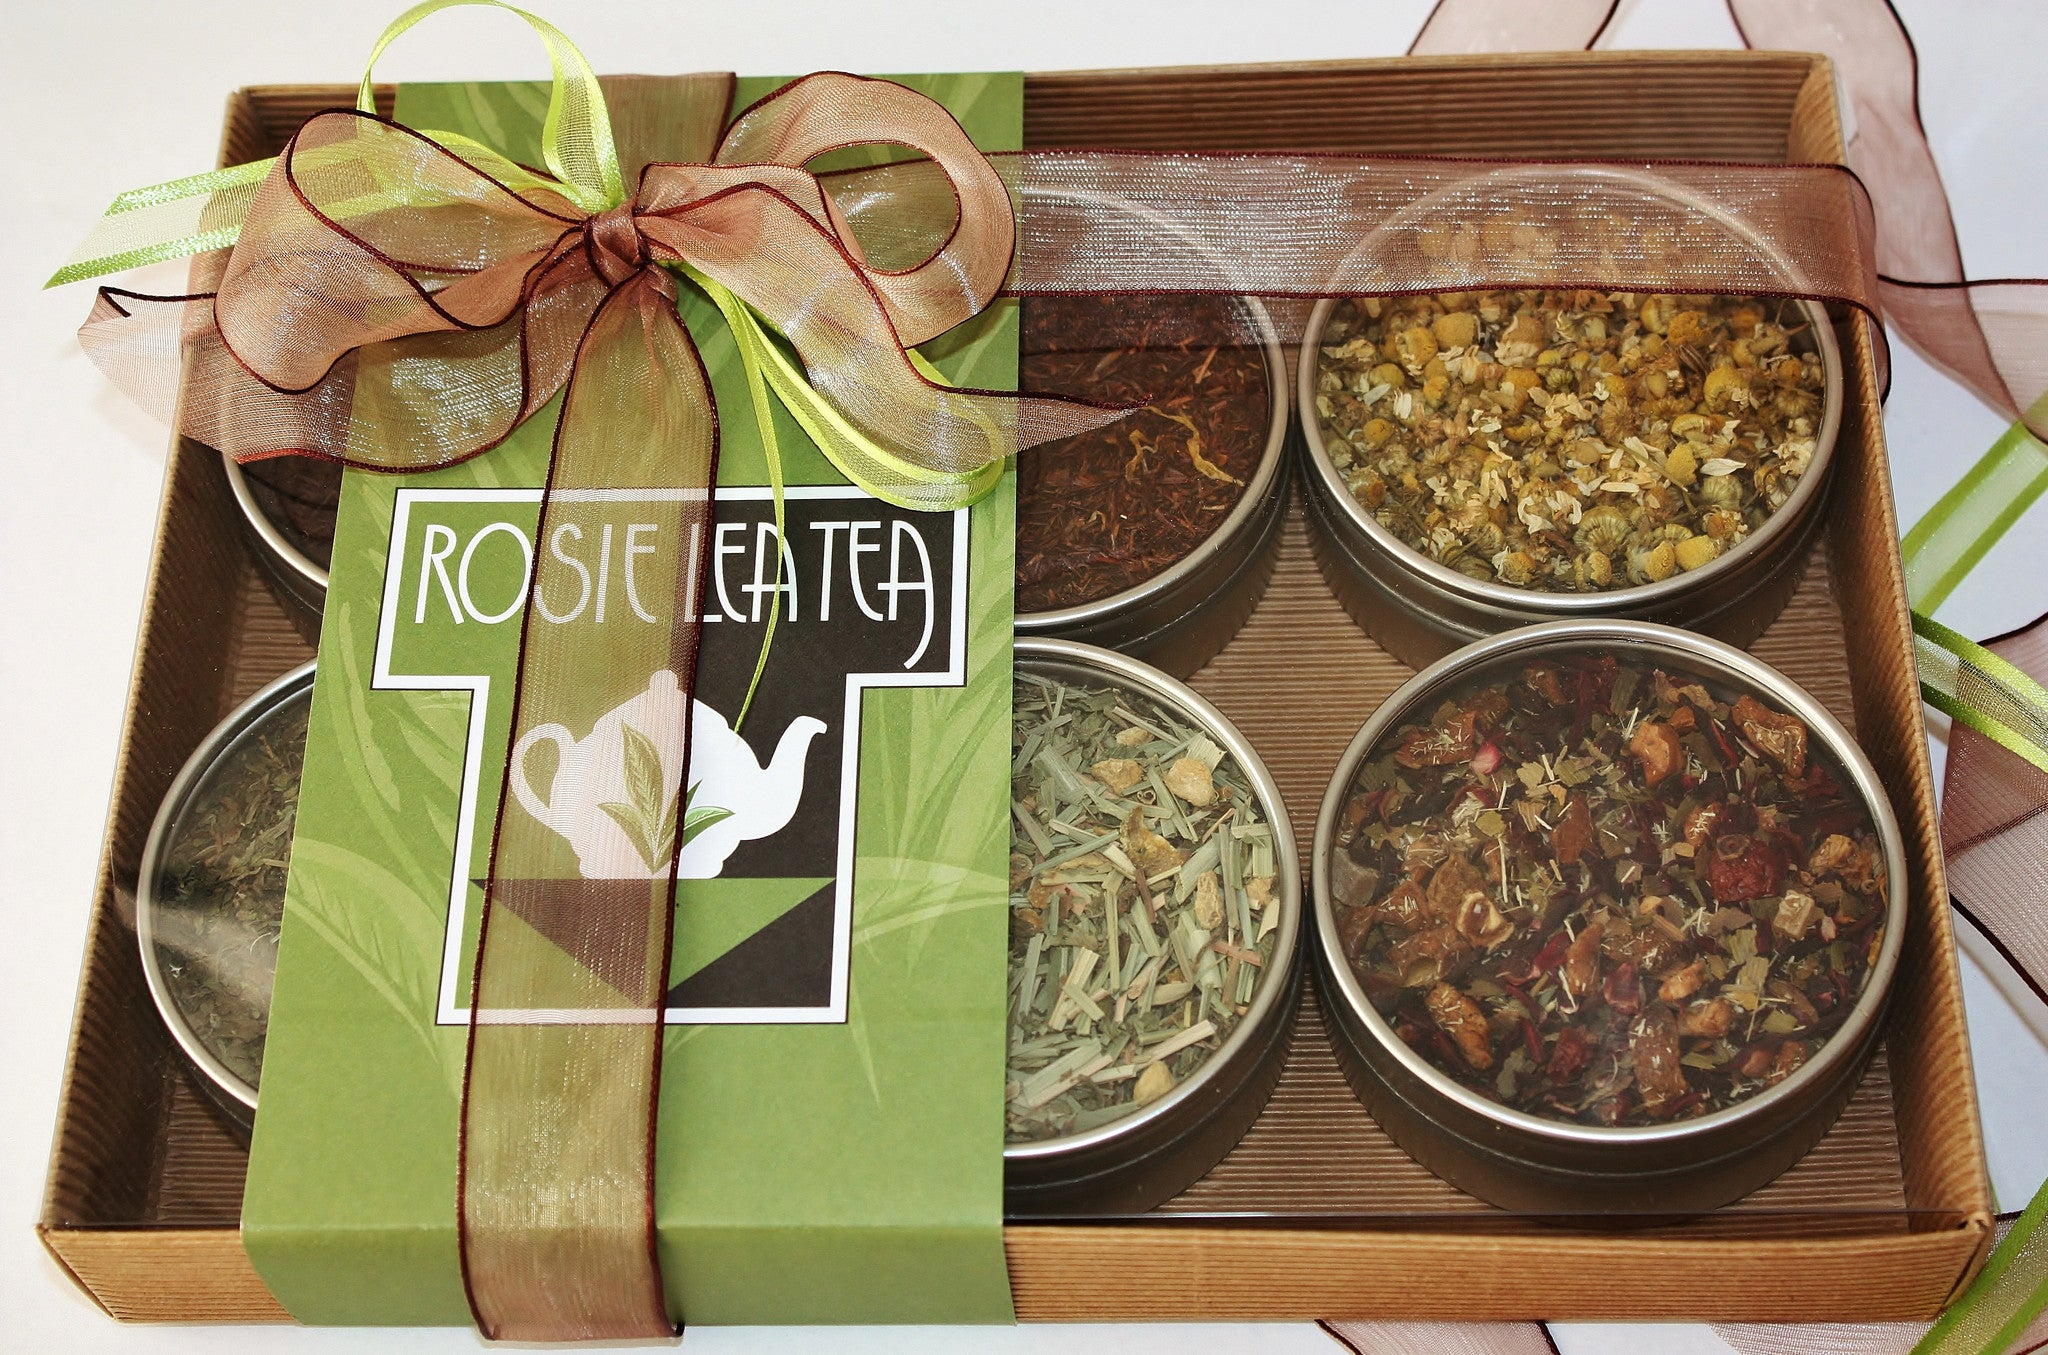 Tea themed gift sets